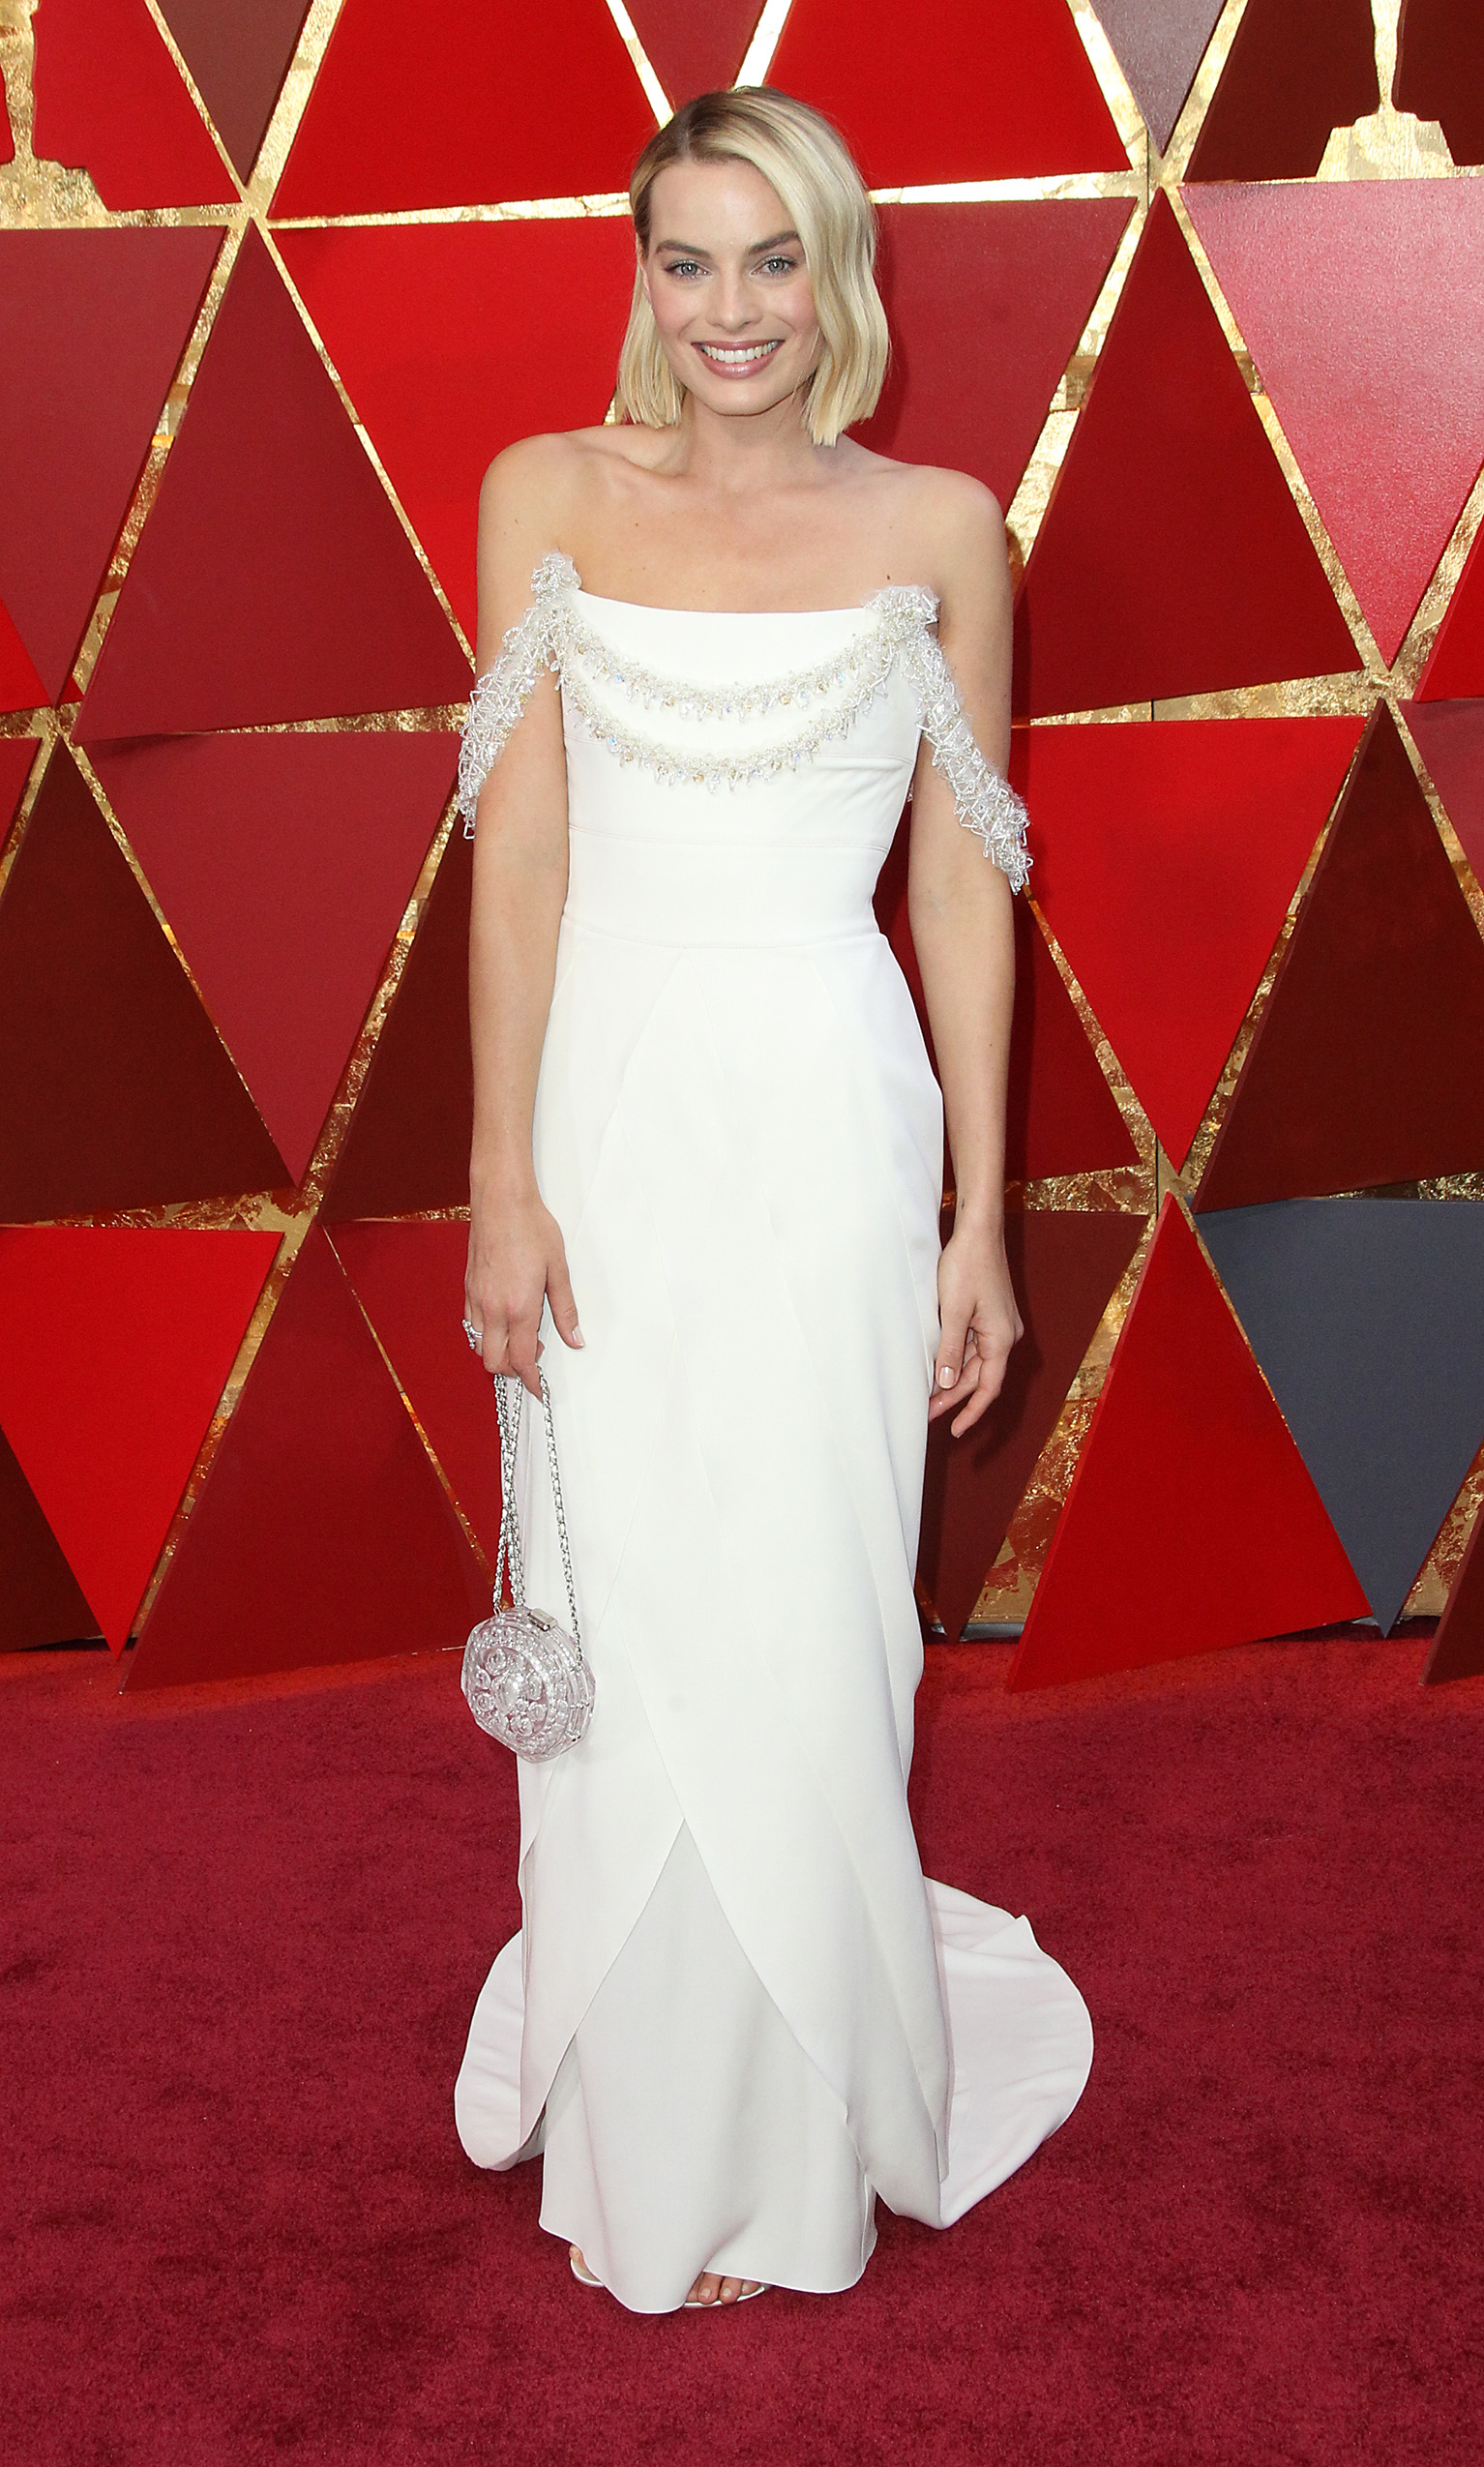 Margot Robbie{&amp;nbsp;}arrives at the 90th Annual Academy Awards (Oscars) held at the Dolby Theater in Hollywood, California. (Image: Adriana M. Barraza/WENN.com)<p></p>